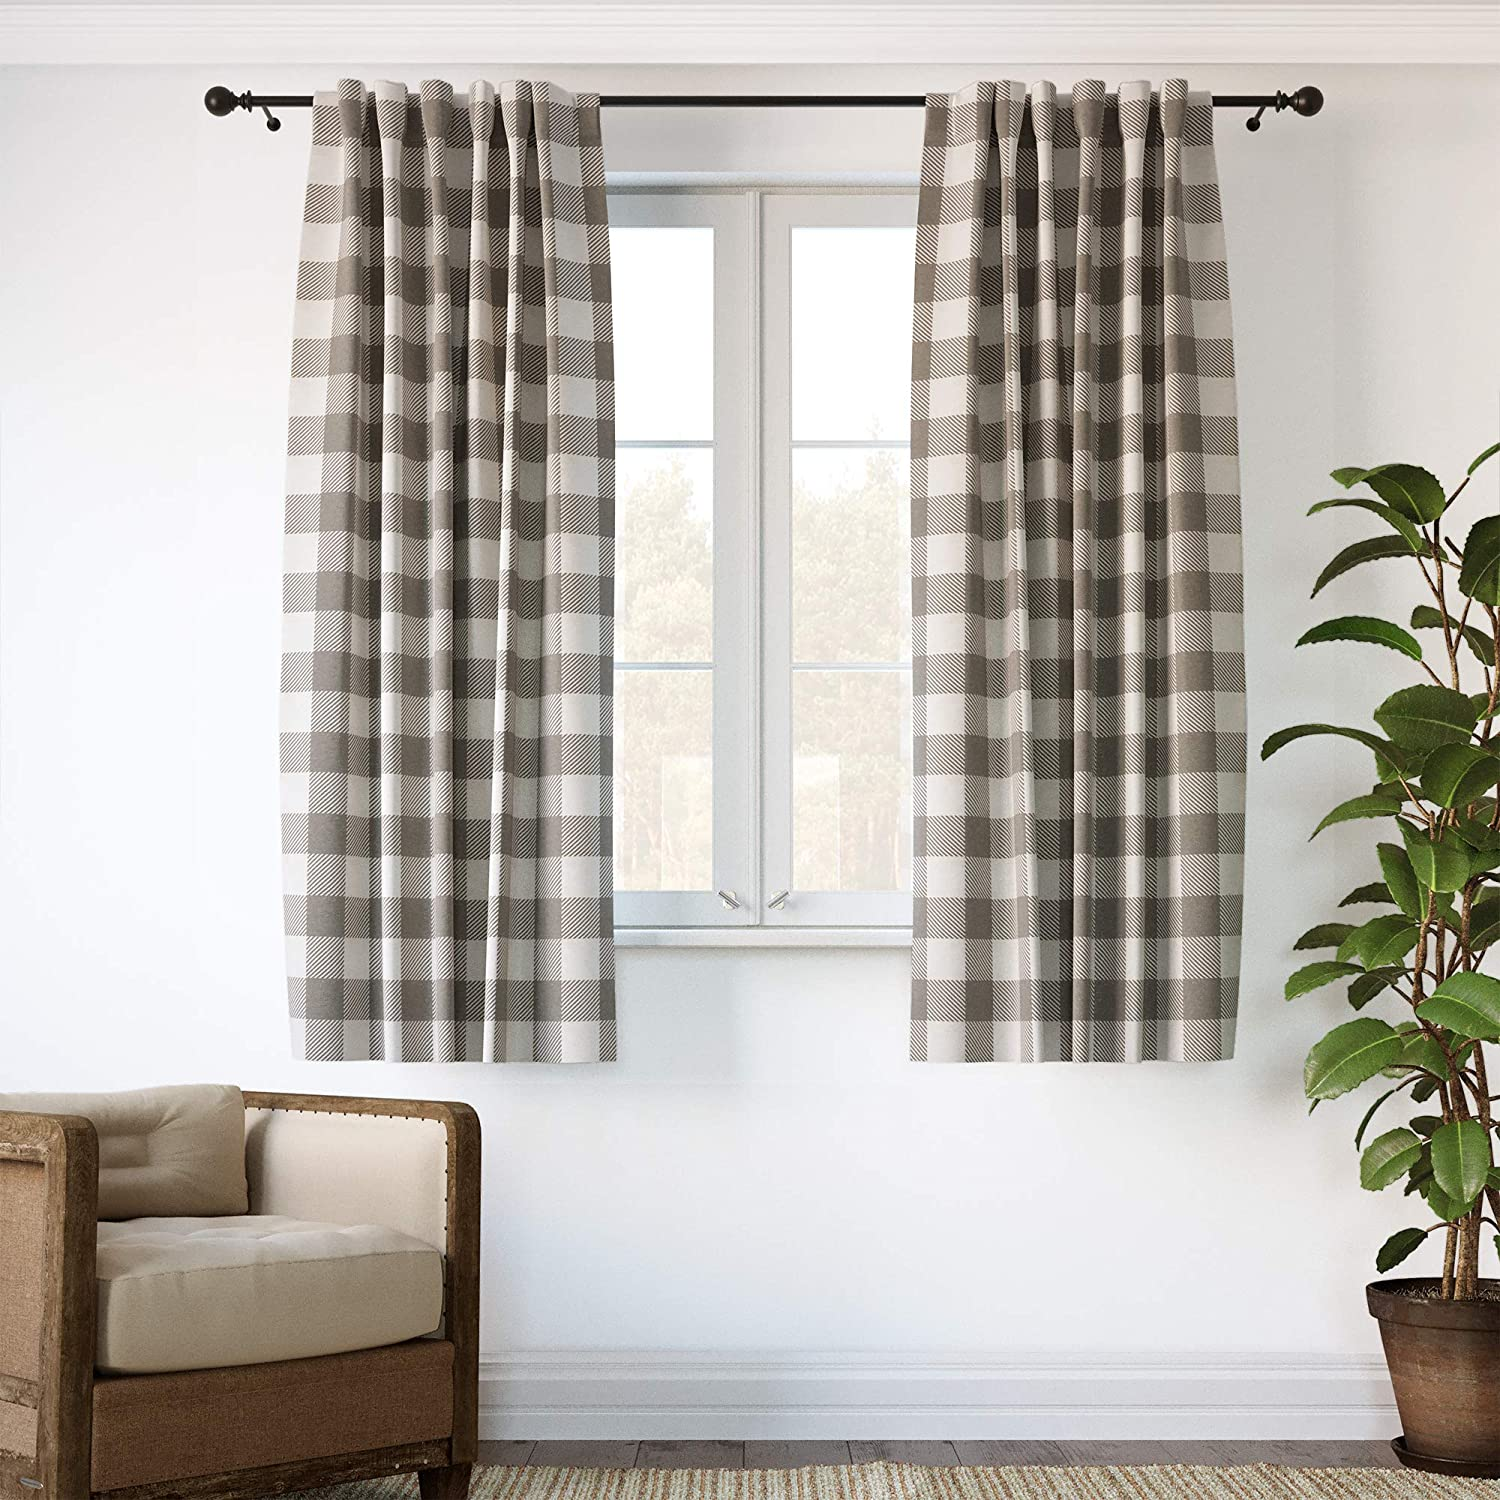 """Barnyard Designs Buffalo Plaid Window Curtain Panels for Kitchen, Living Room, Bedroom, Grey and Ivory Gingham Check Rod Pocket Curtains, Farmhouse Country Home Decor, 52"""" x 72"""", Set of 2"""